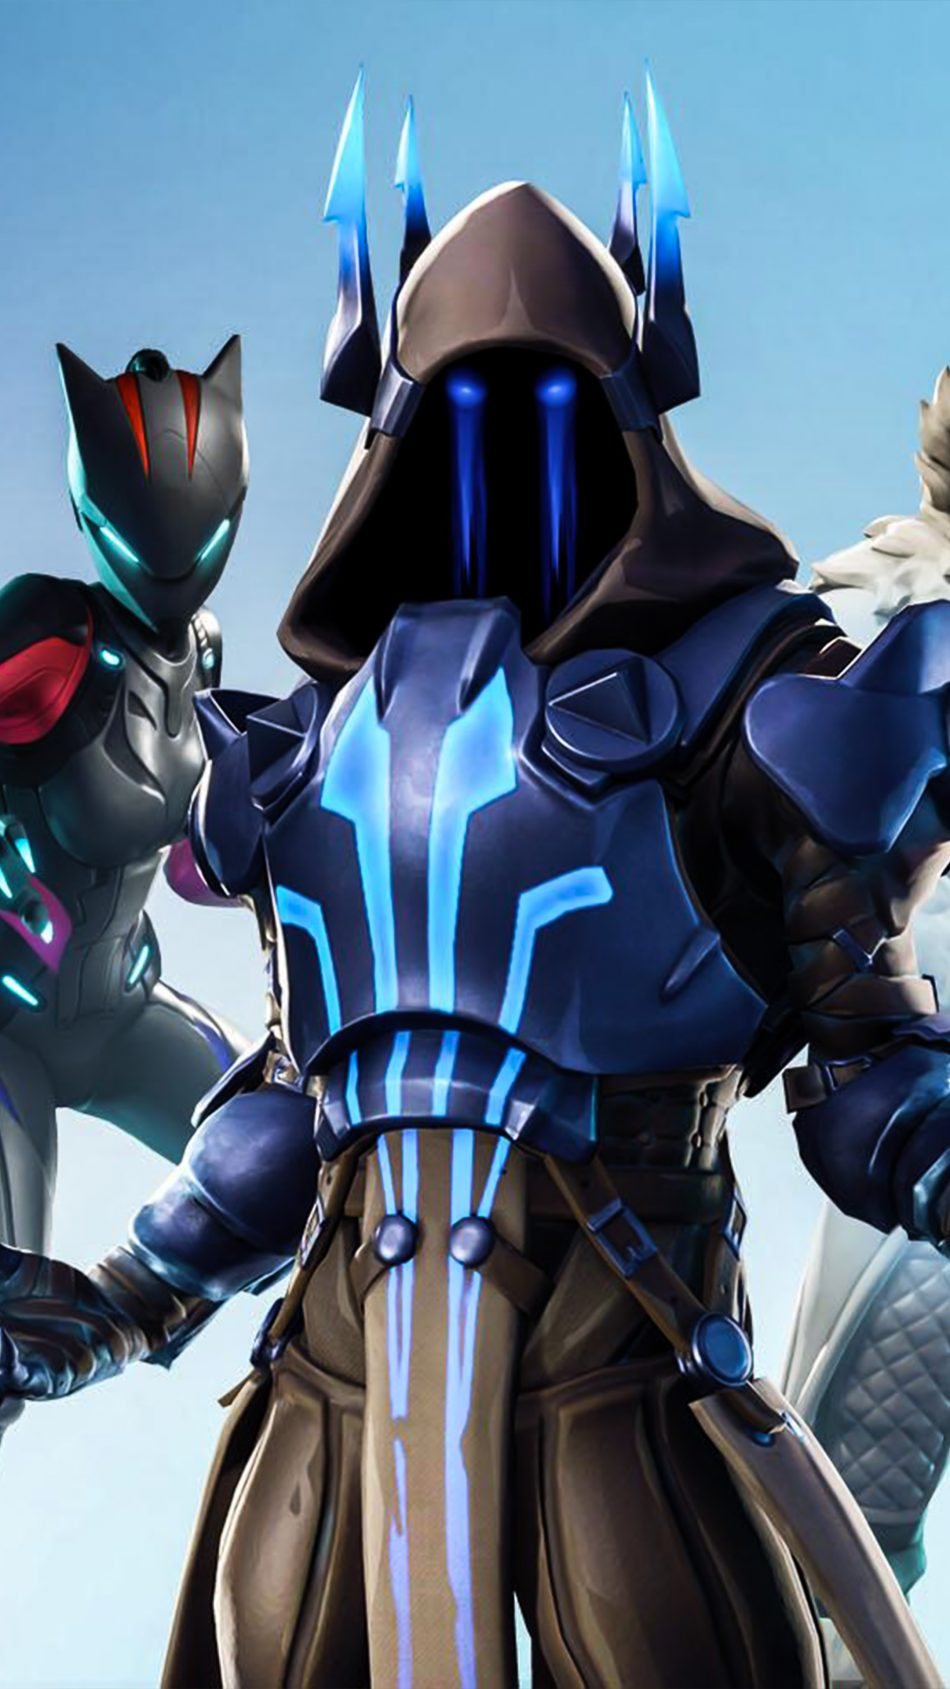 Download Ice King Fortnite Free Pure 4k Ultra Hd Mobile